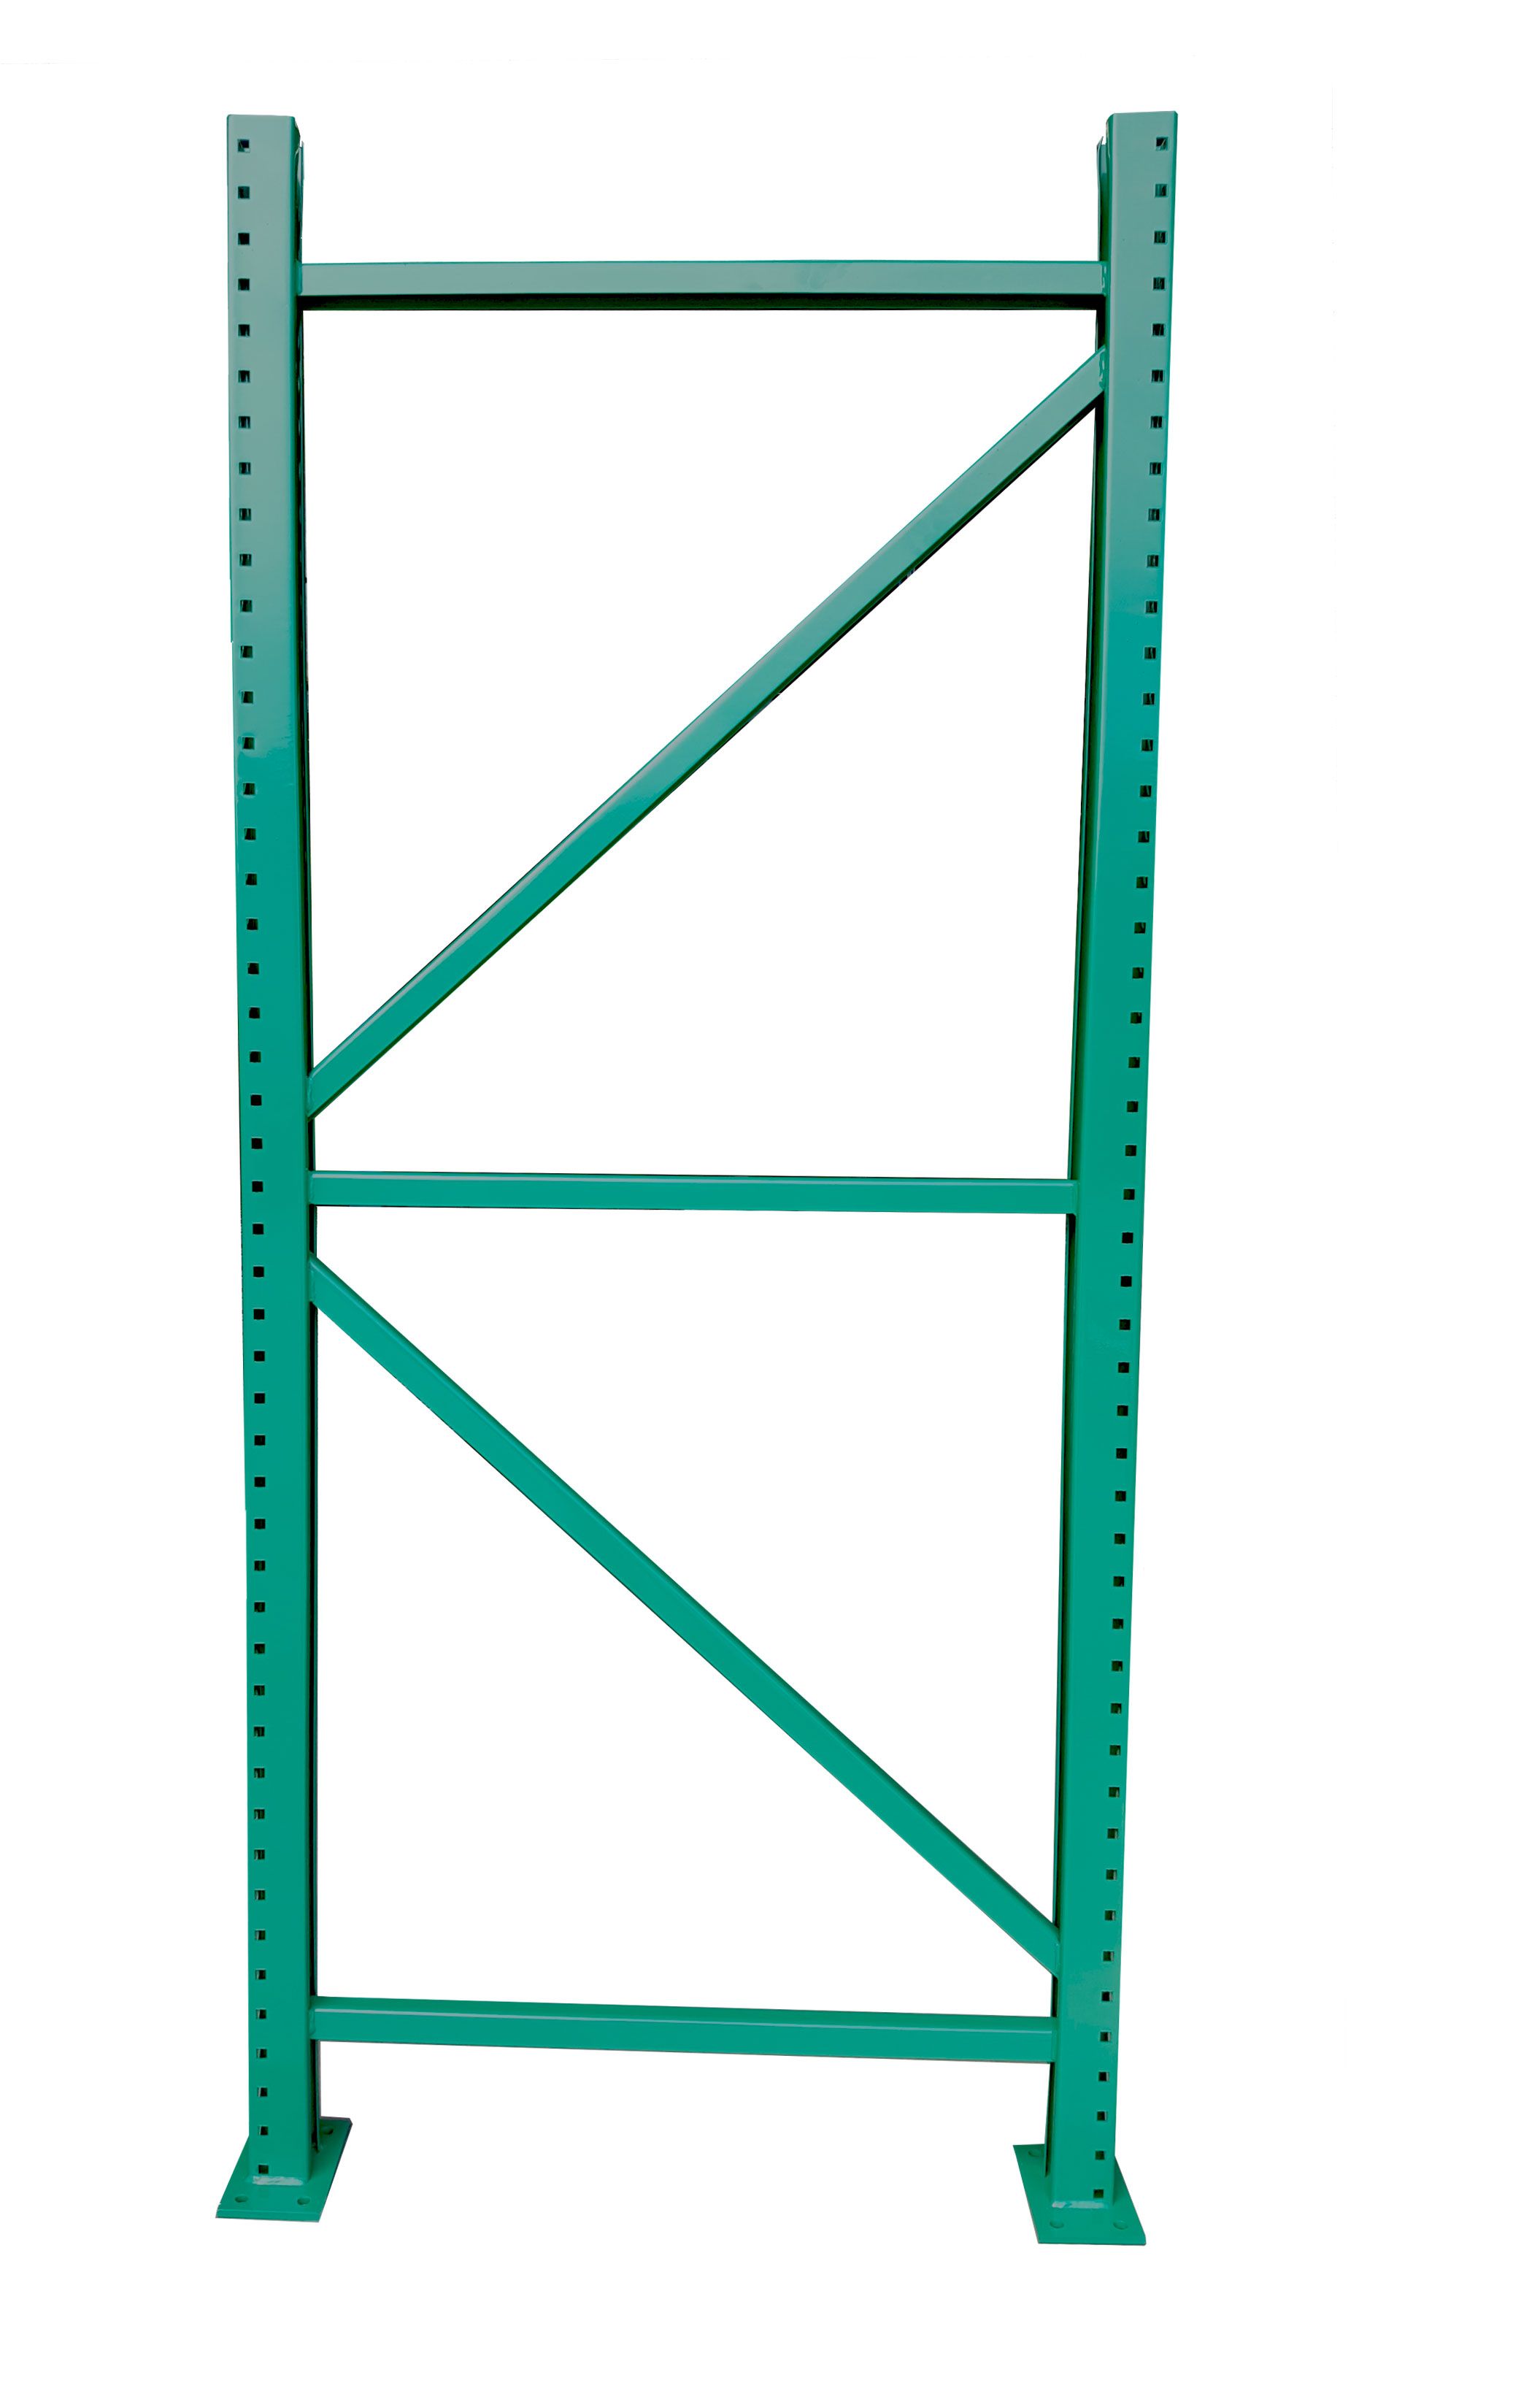 compton pallet rack upright